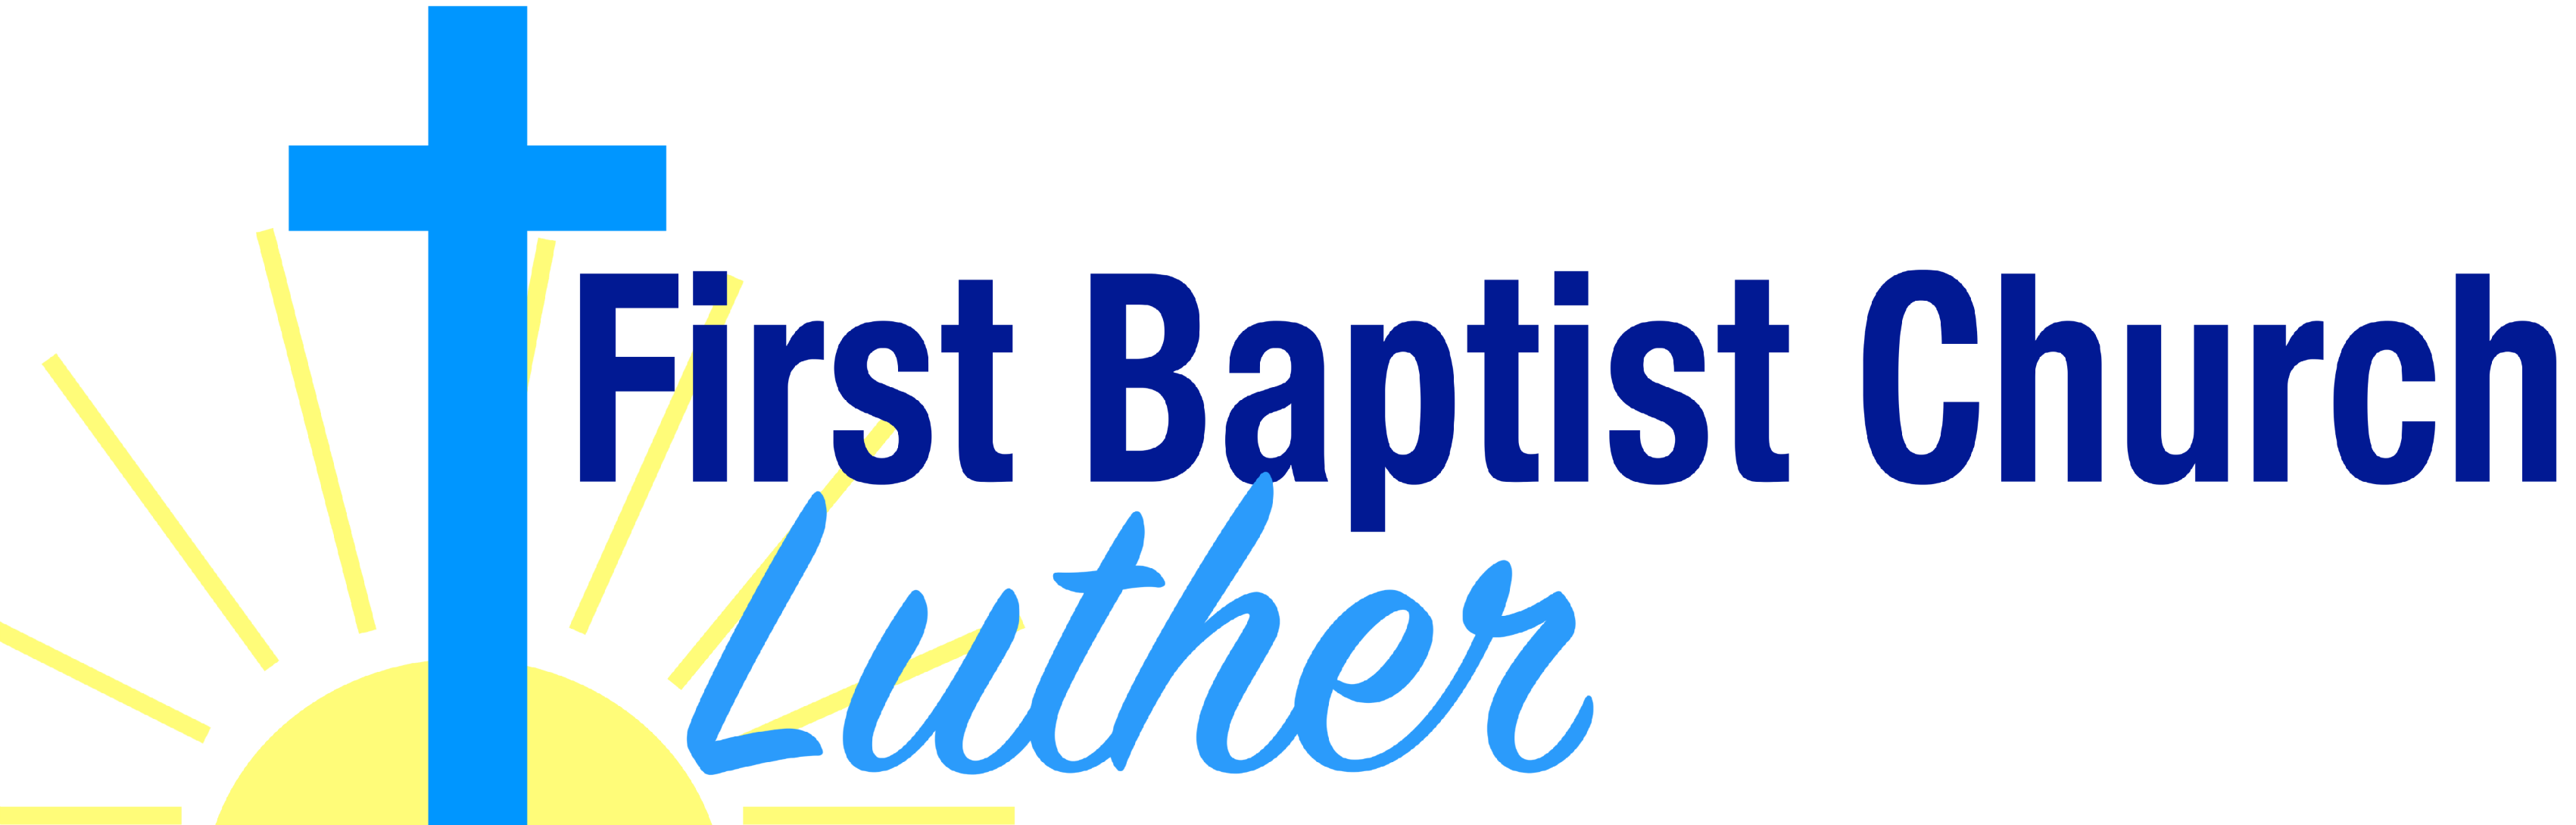 First Baptist Church Luther